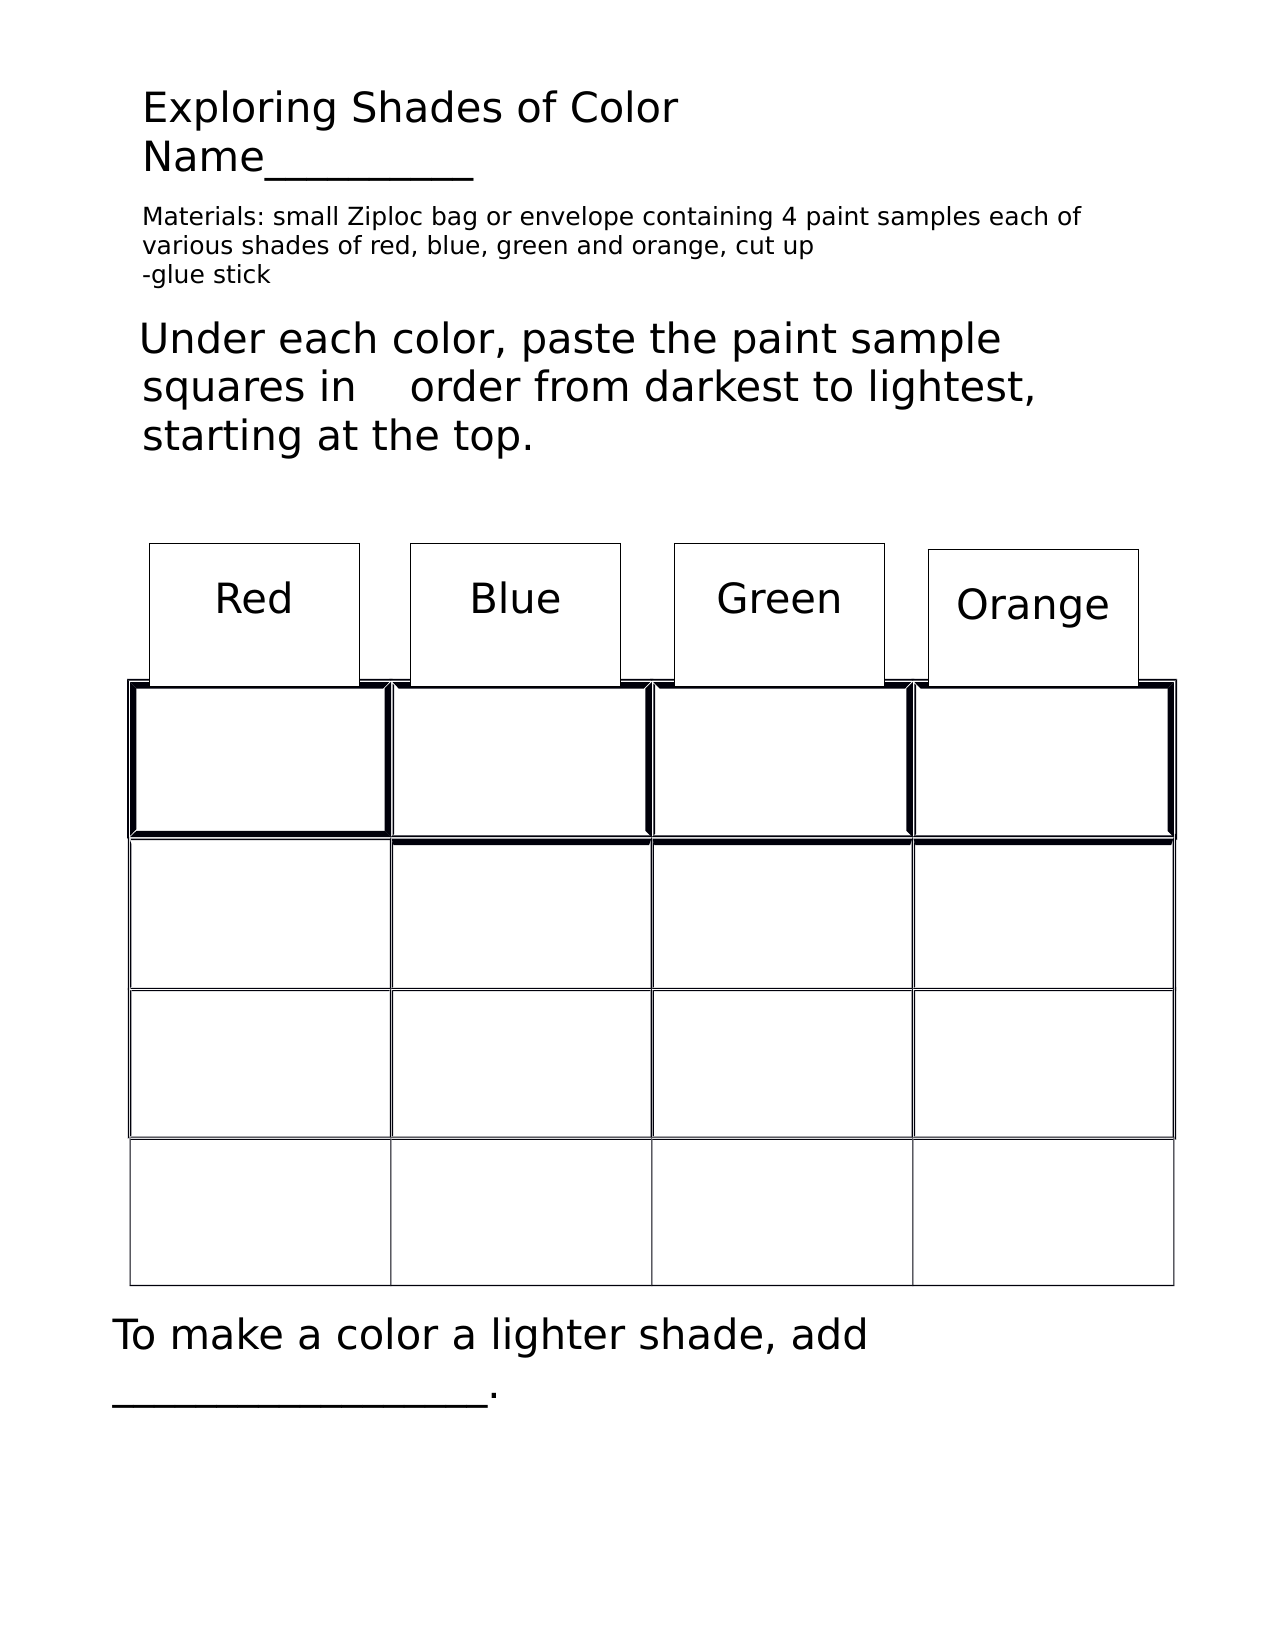 Shades of color Resource Preview